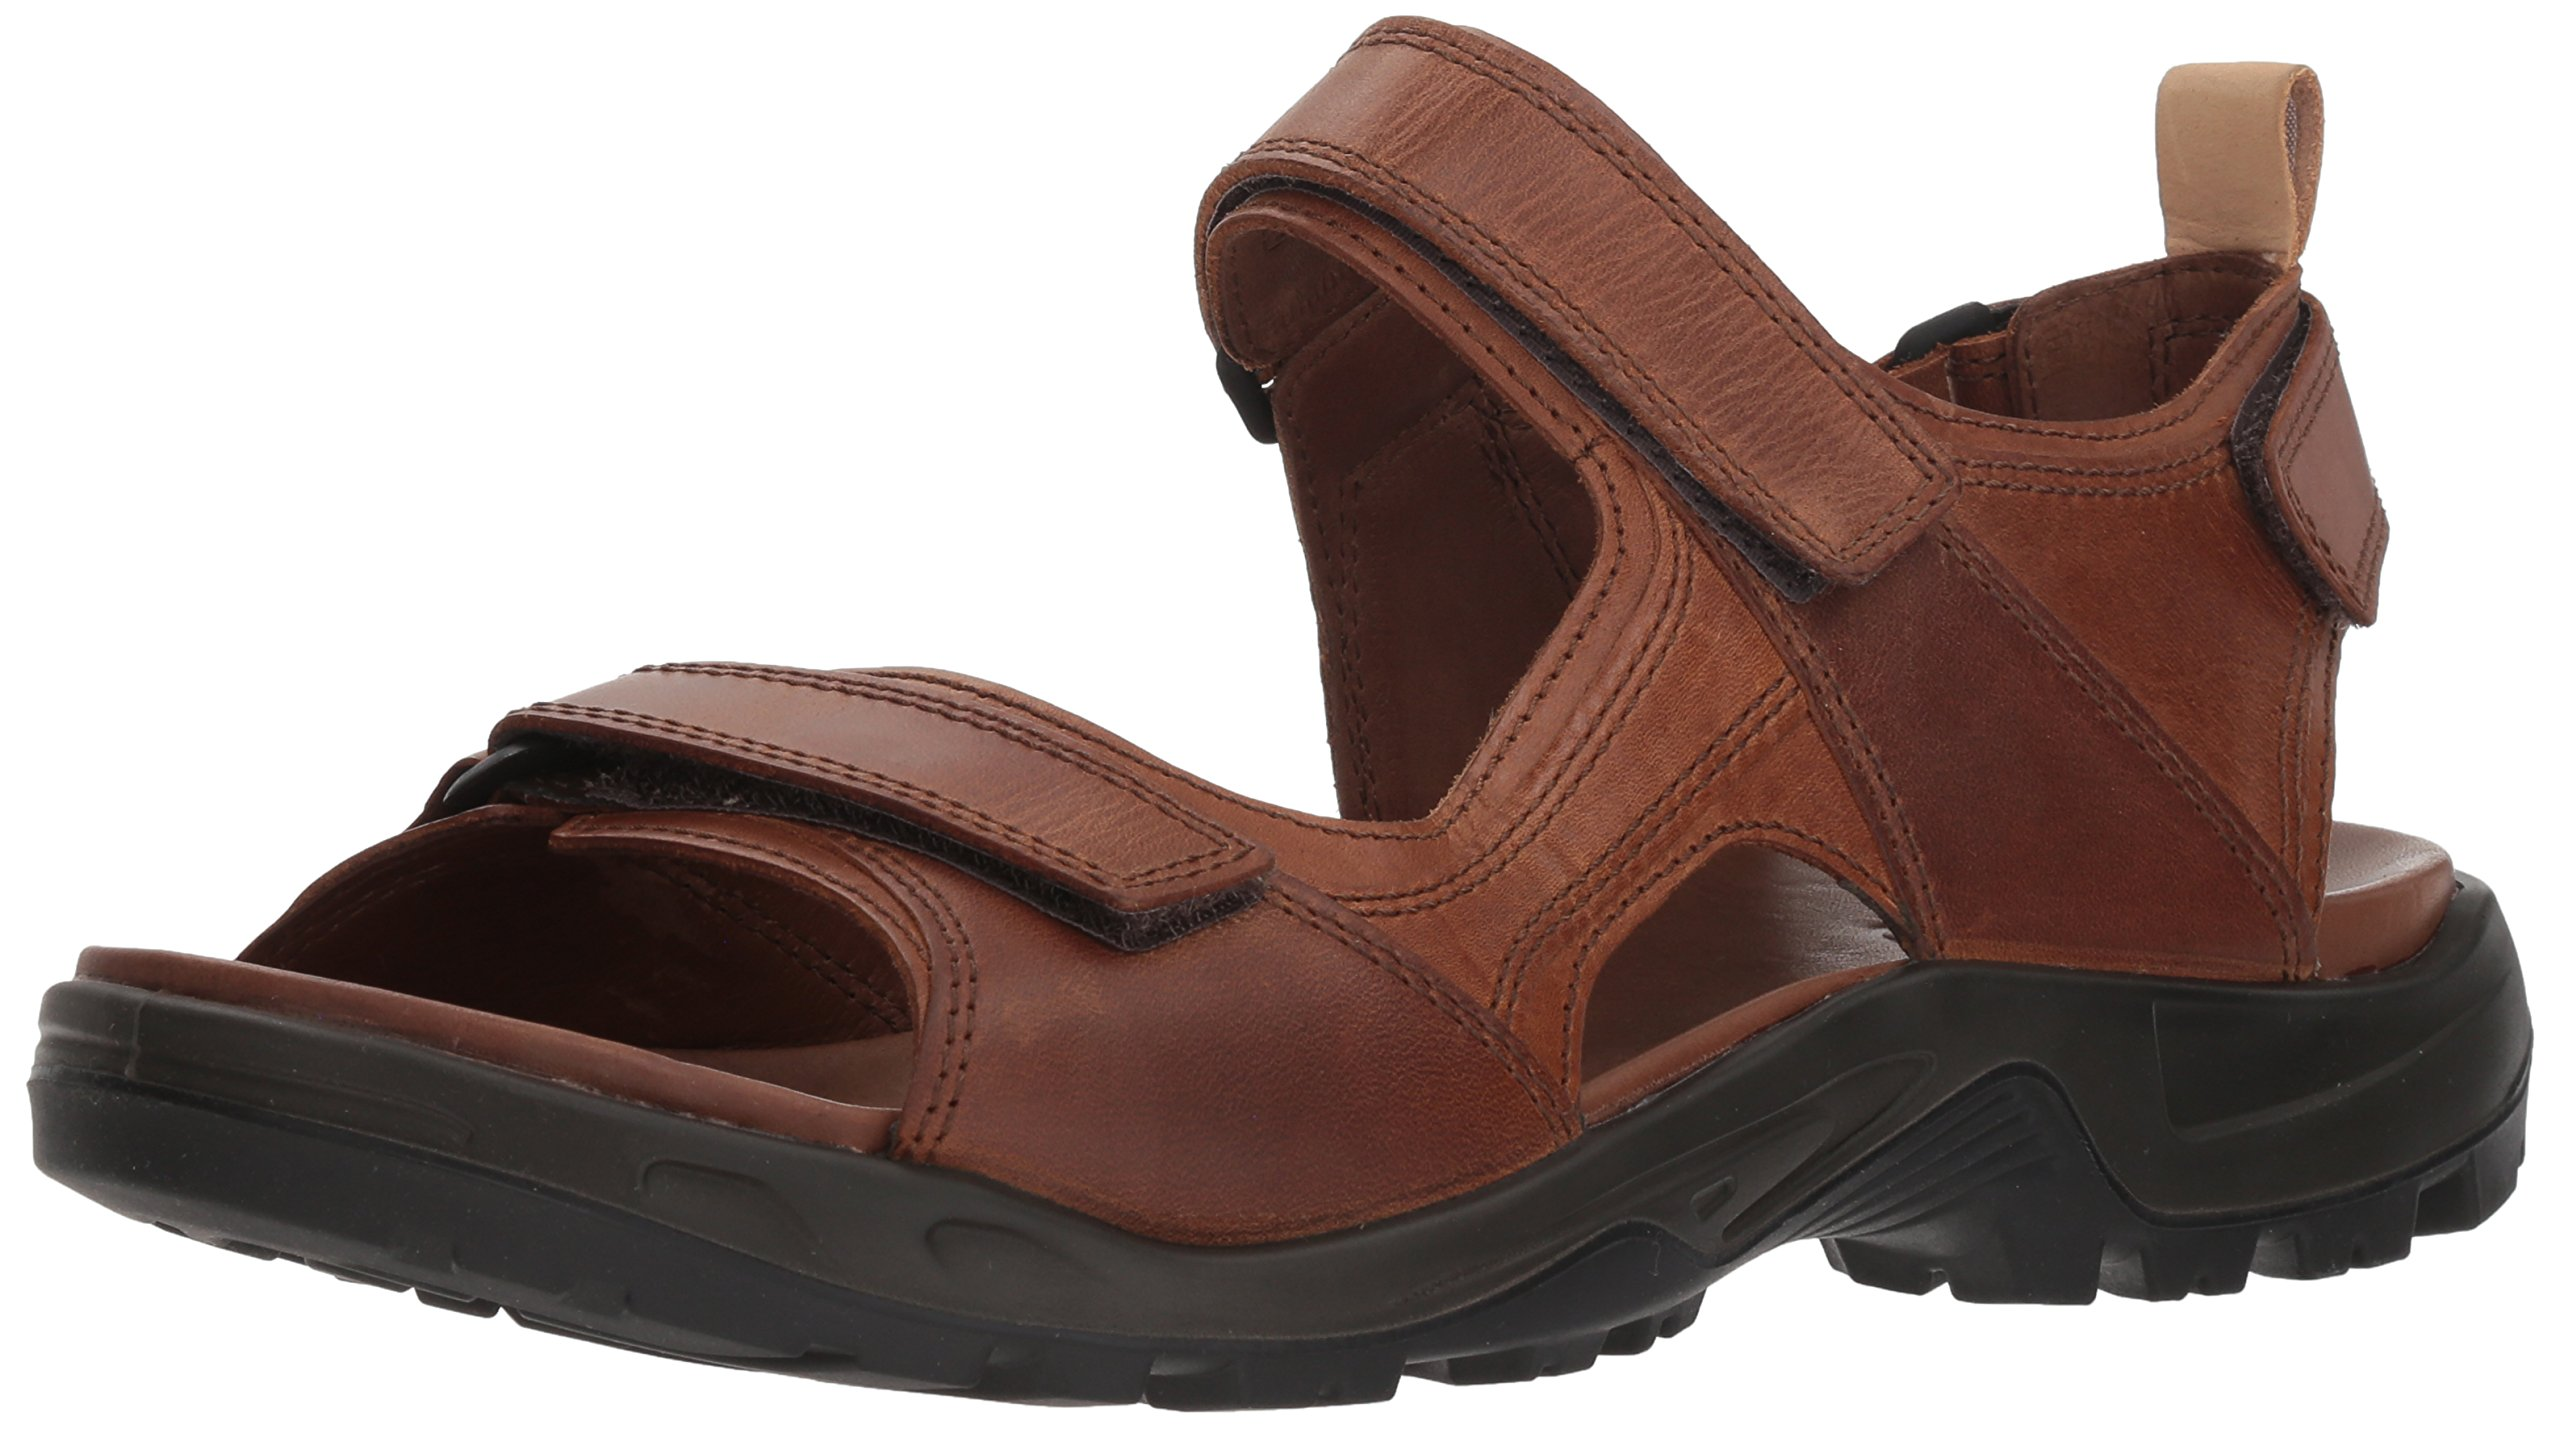 ECCO Men's Yucatan outdoor offroad hiking sandal, cocoa brown/powder, 44 EU (US Men's 10-10.5 M) by ECCO